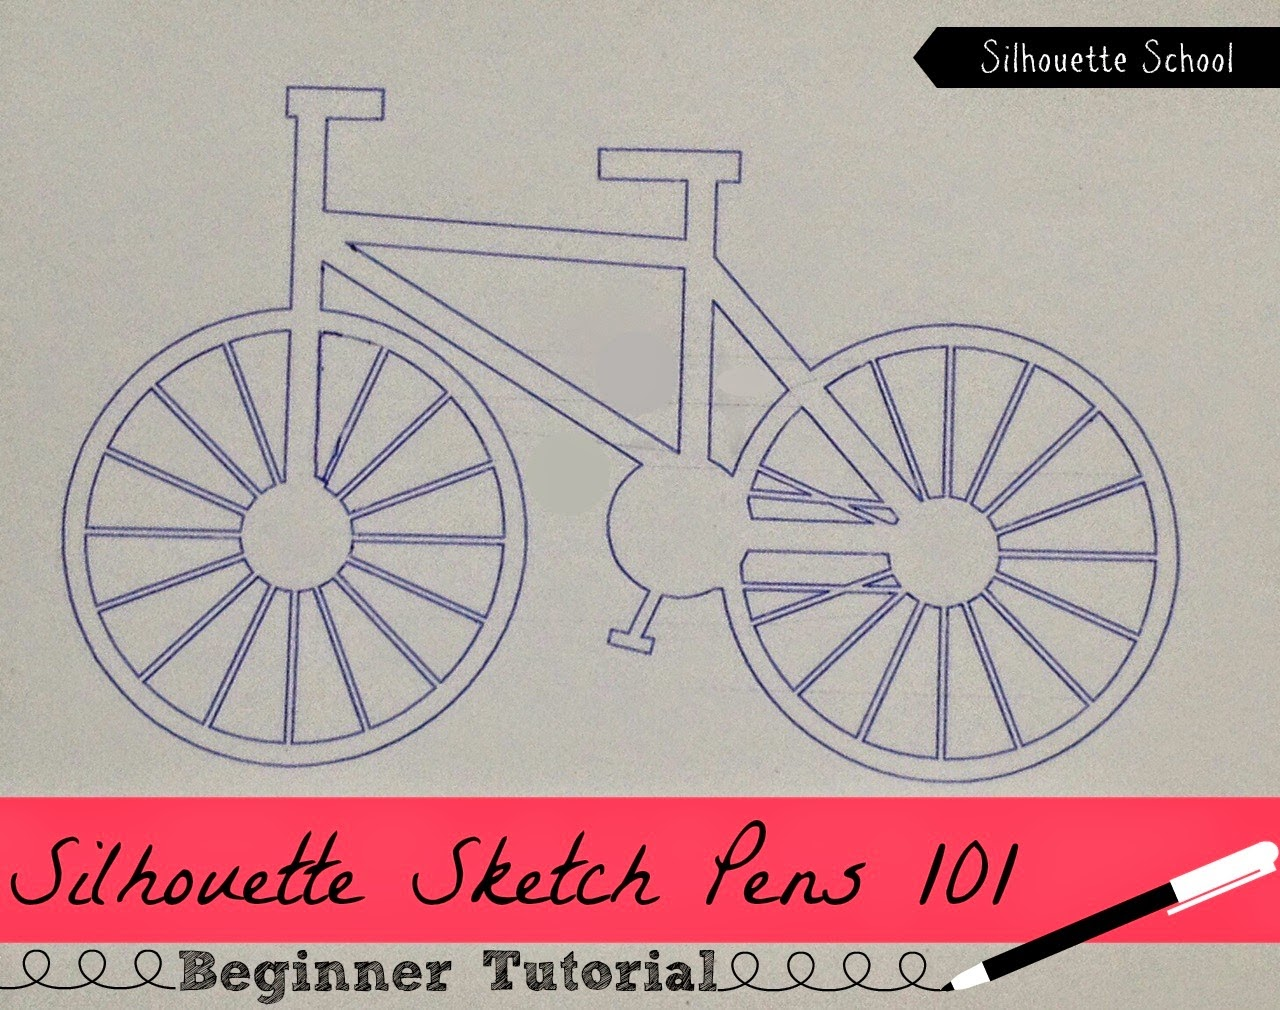 silhouette sketch pens tutorial, silhouette sketch pens, sketch pen projects, sketch pen beginners